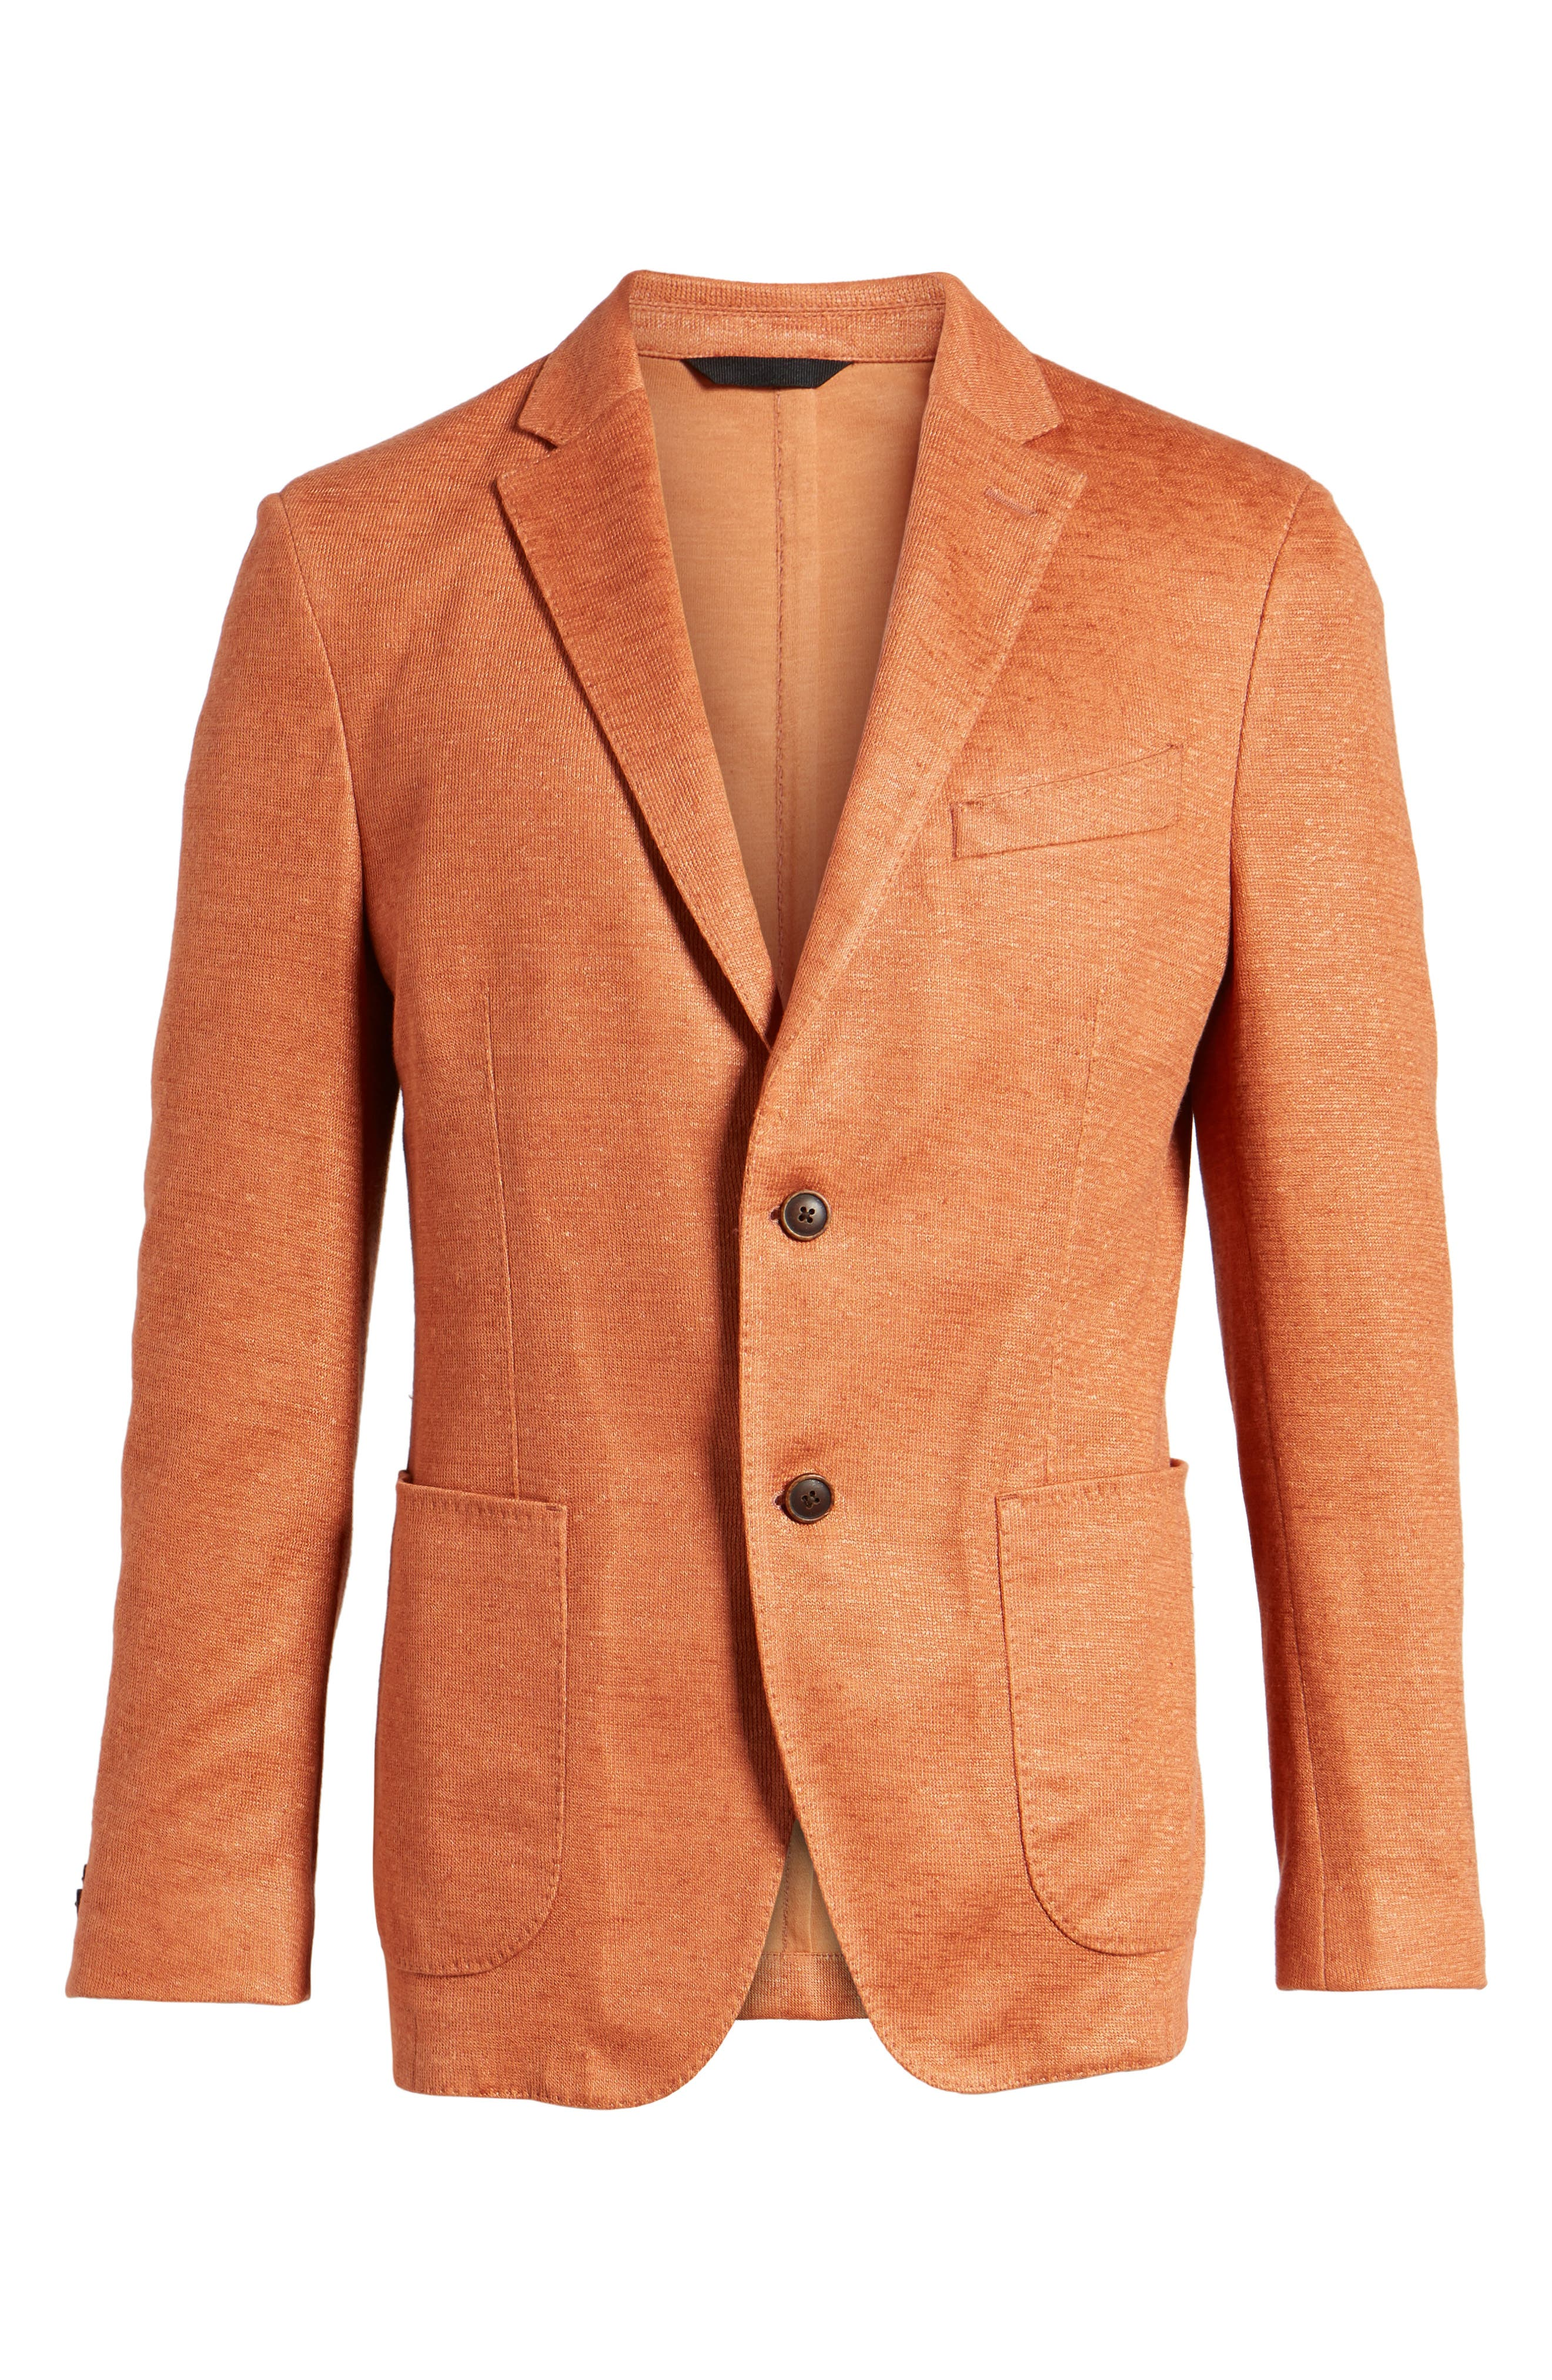 Trim Fit Heathered Jersey Blazer,                             Alternate thumbnail 6, color,                             Orange